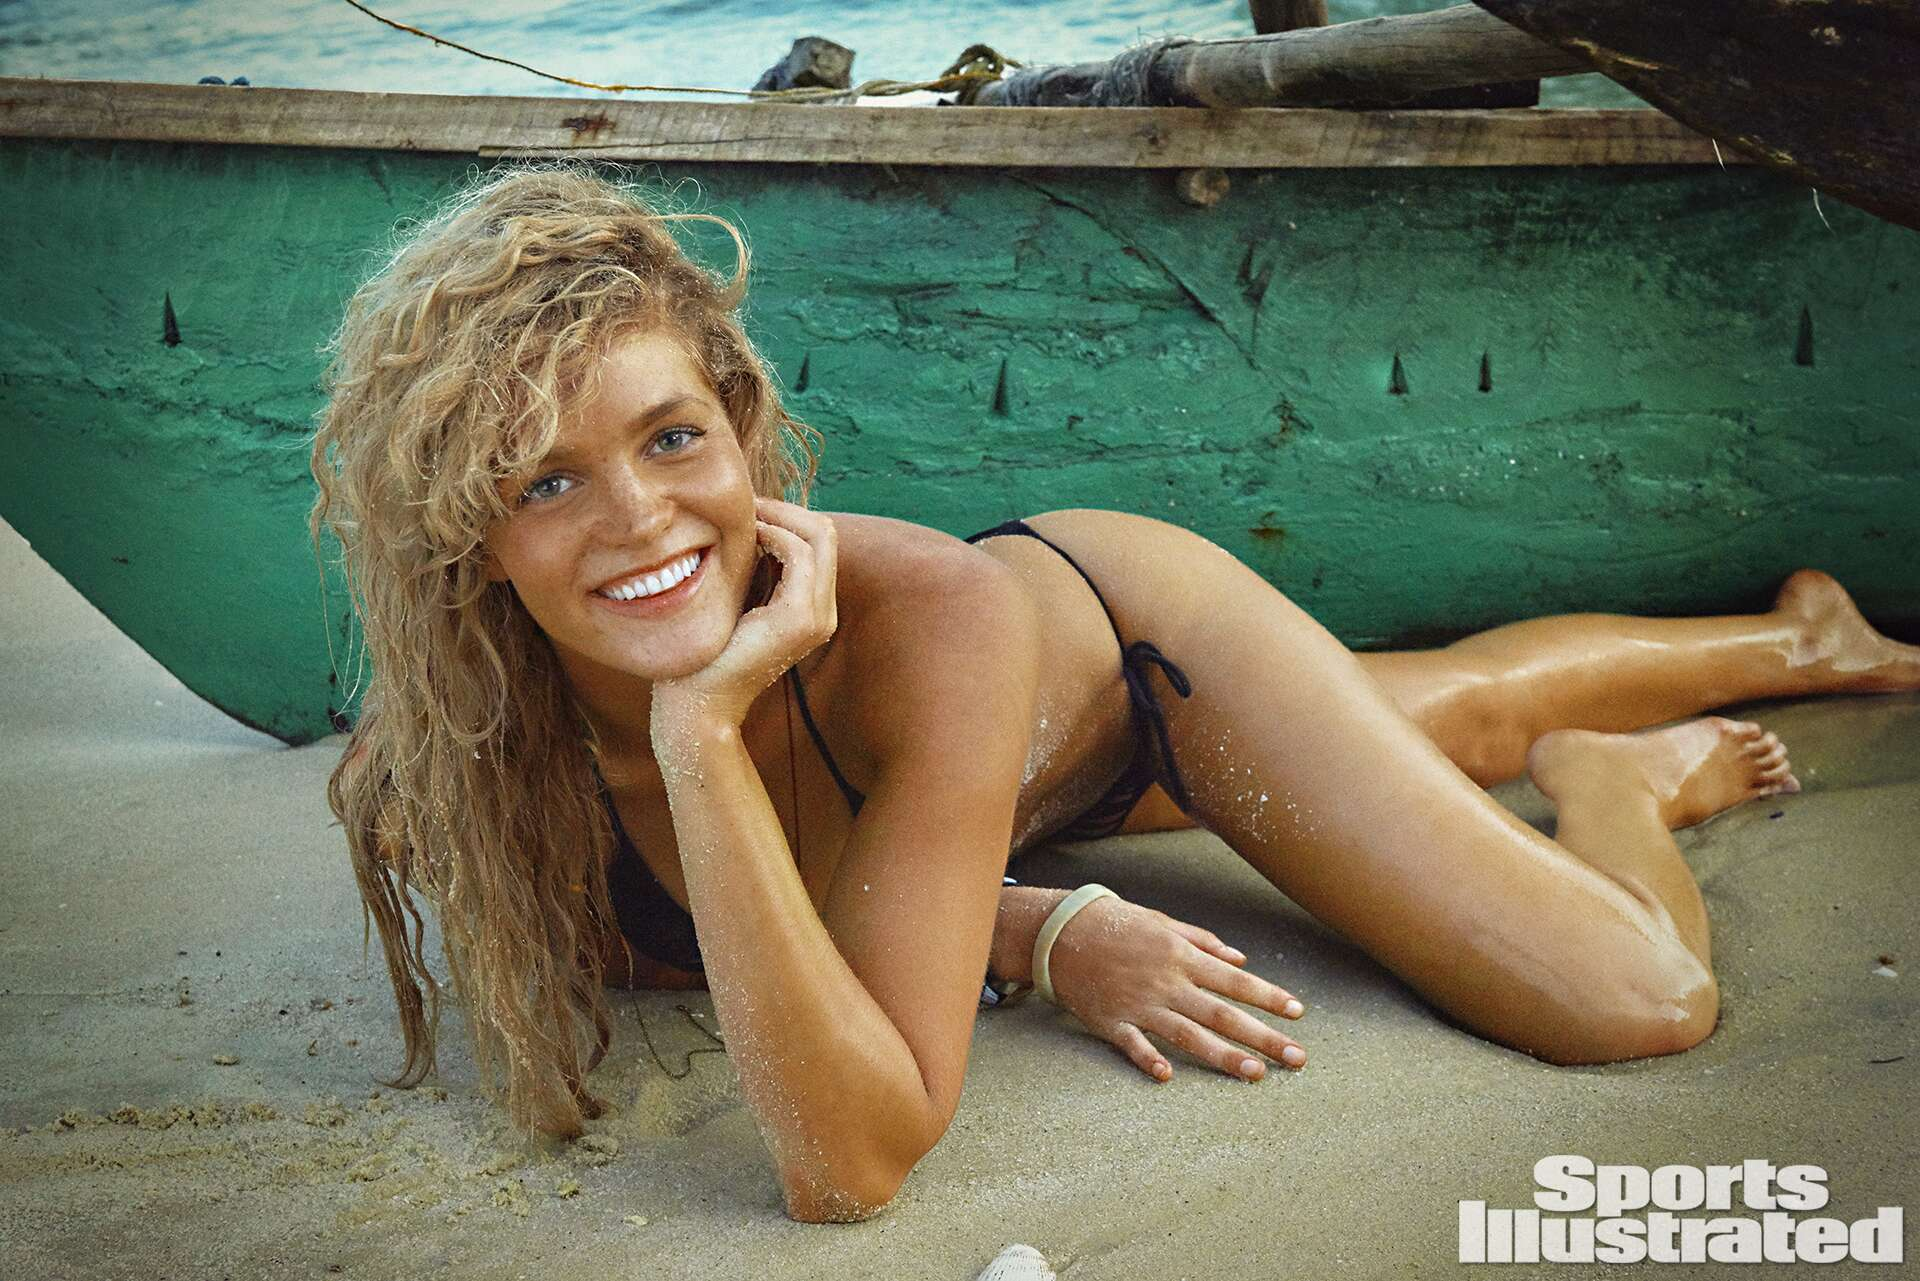 Erin Heatherton was photographed by Ruven Afanador in Zanzibar. Swimsuit by Kate Swim.